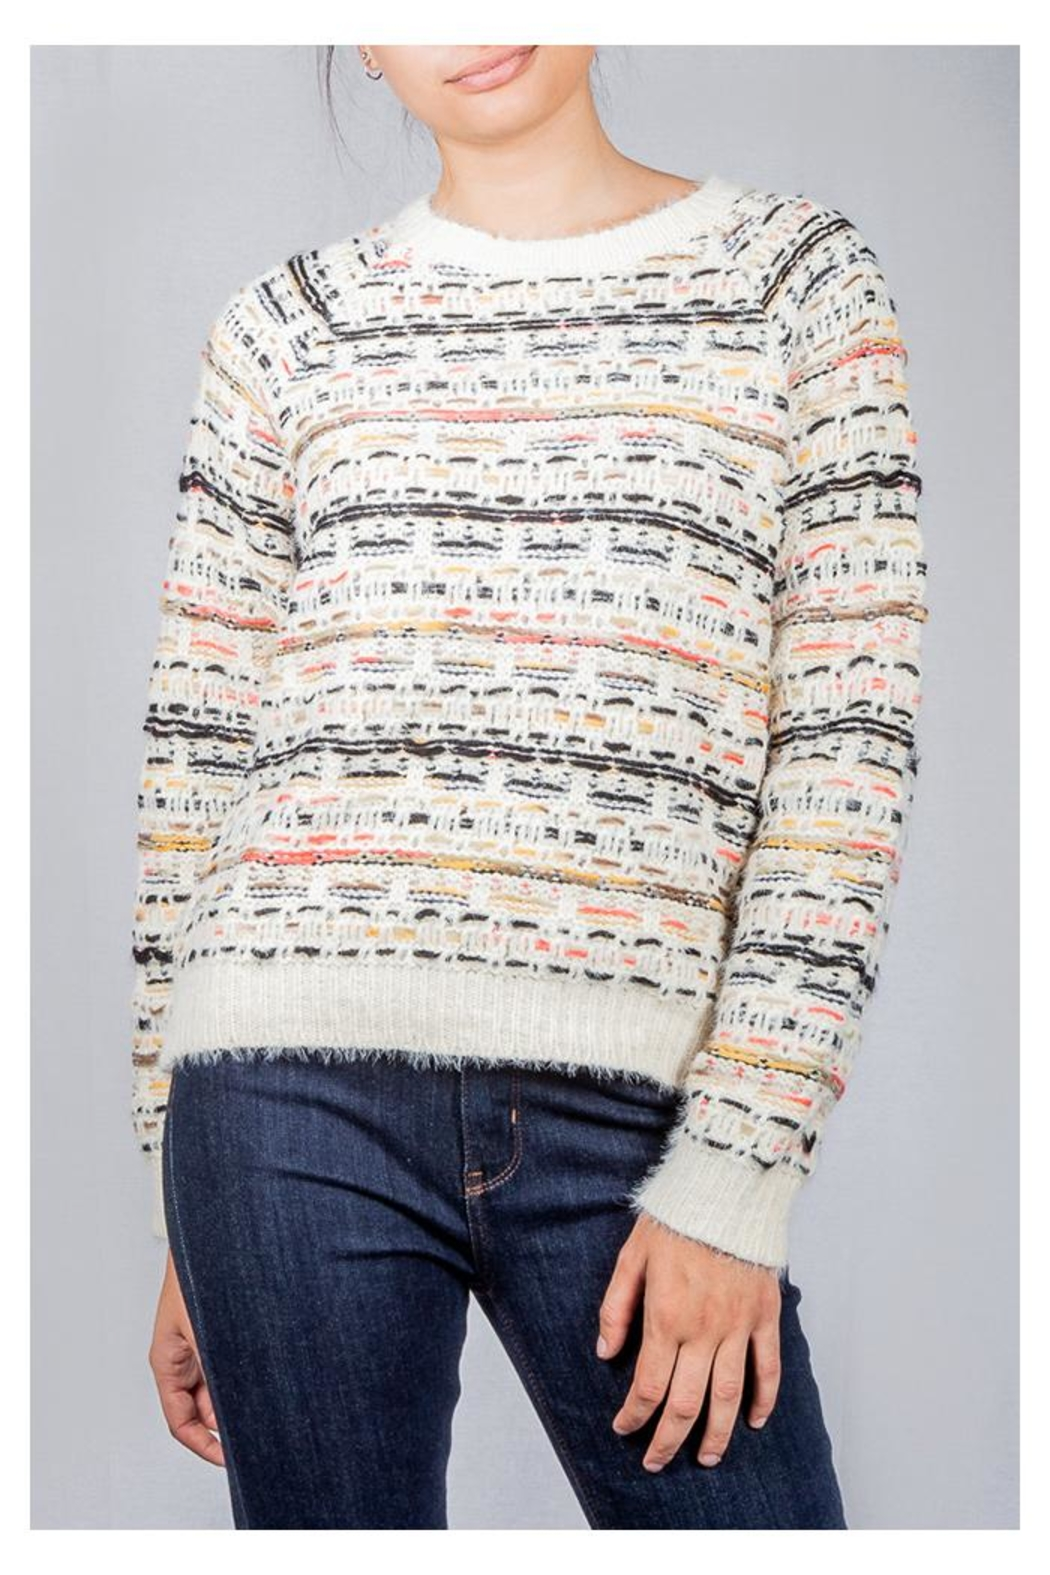 Lumiere Colorful Weave Sweater - Main Image